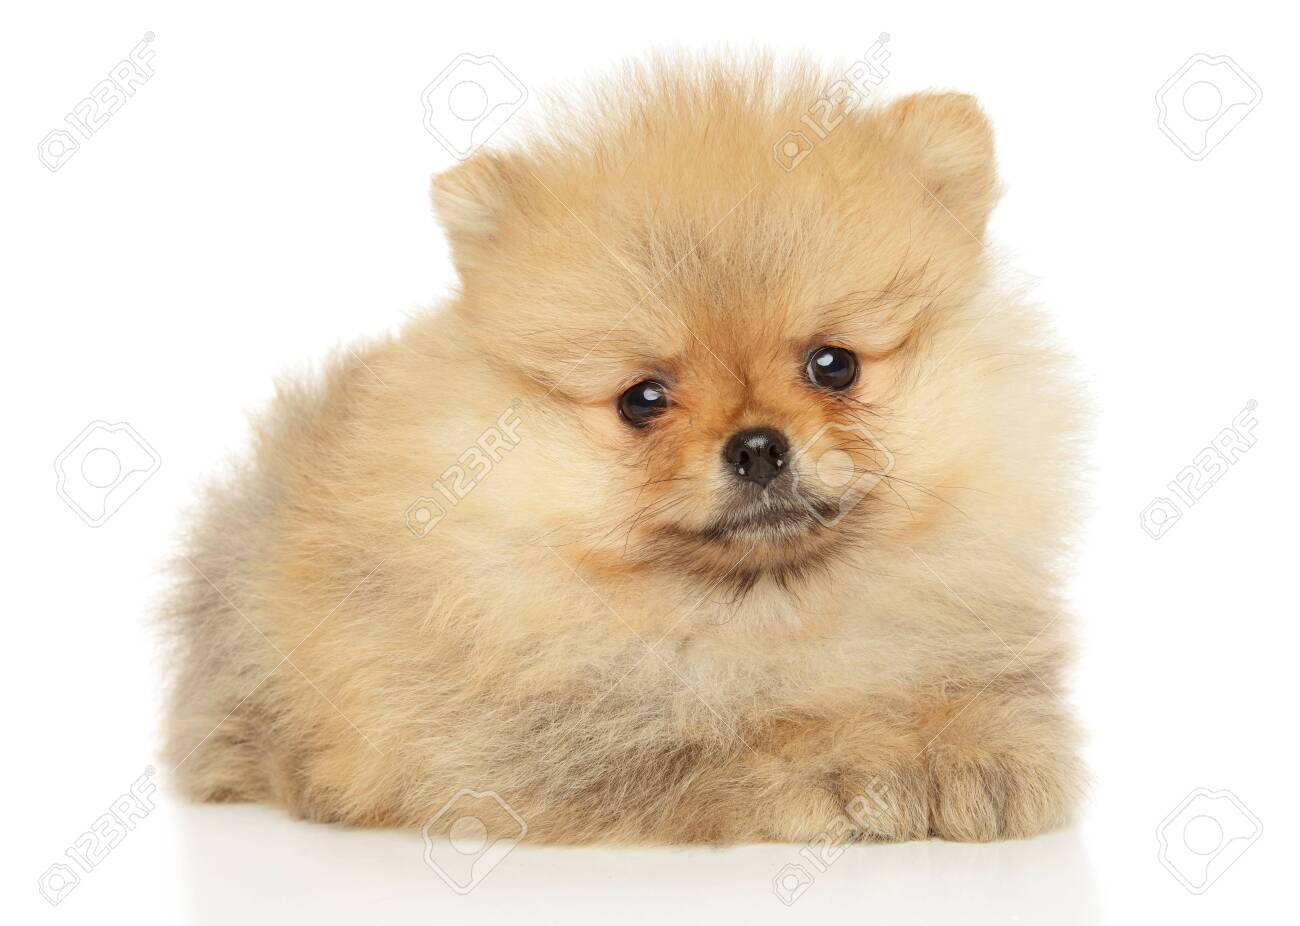 Cute Pomeranian Puppy Lying On A White Background The Theme Stock Photo Picture And Royalty Free Image Image 150450121